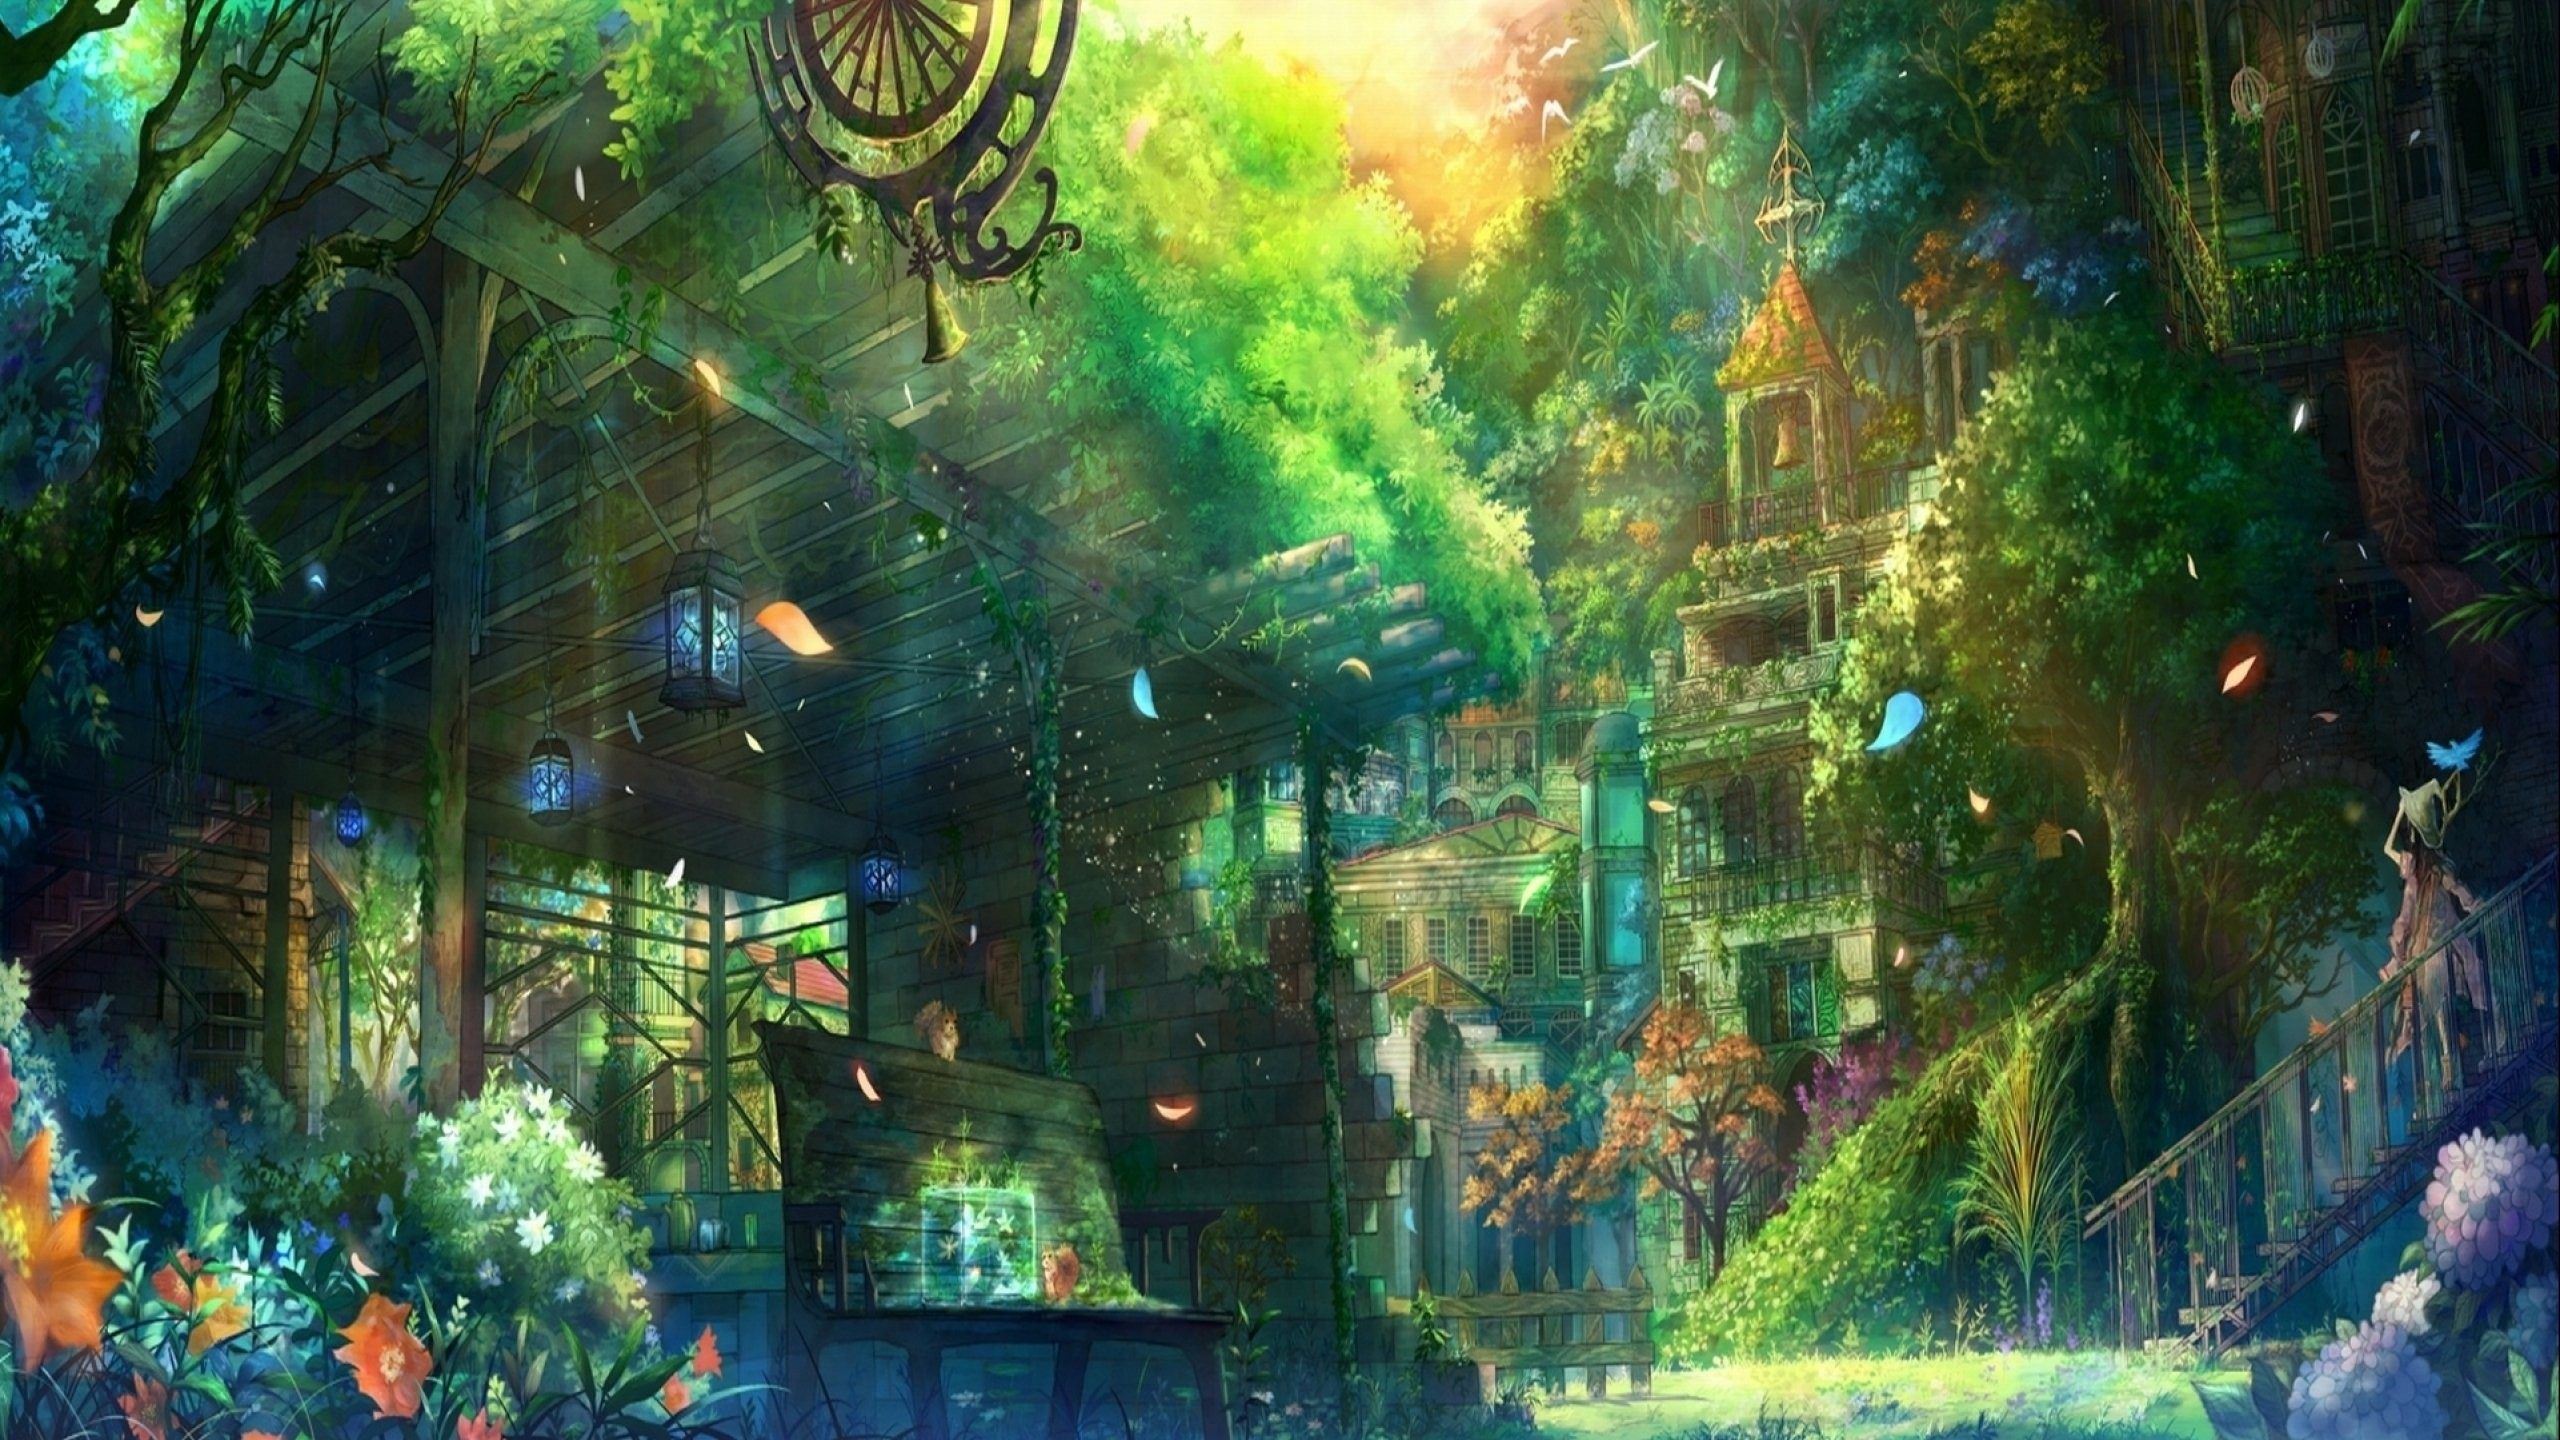 Fantasy City Wallpaper Hd: Anime Fantasy Wallpaper (74+ Images